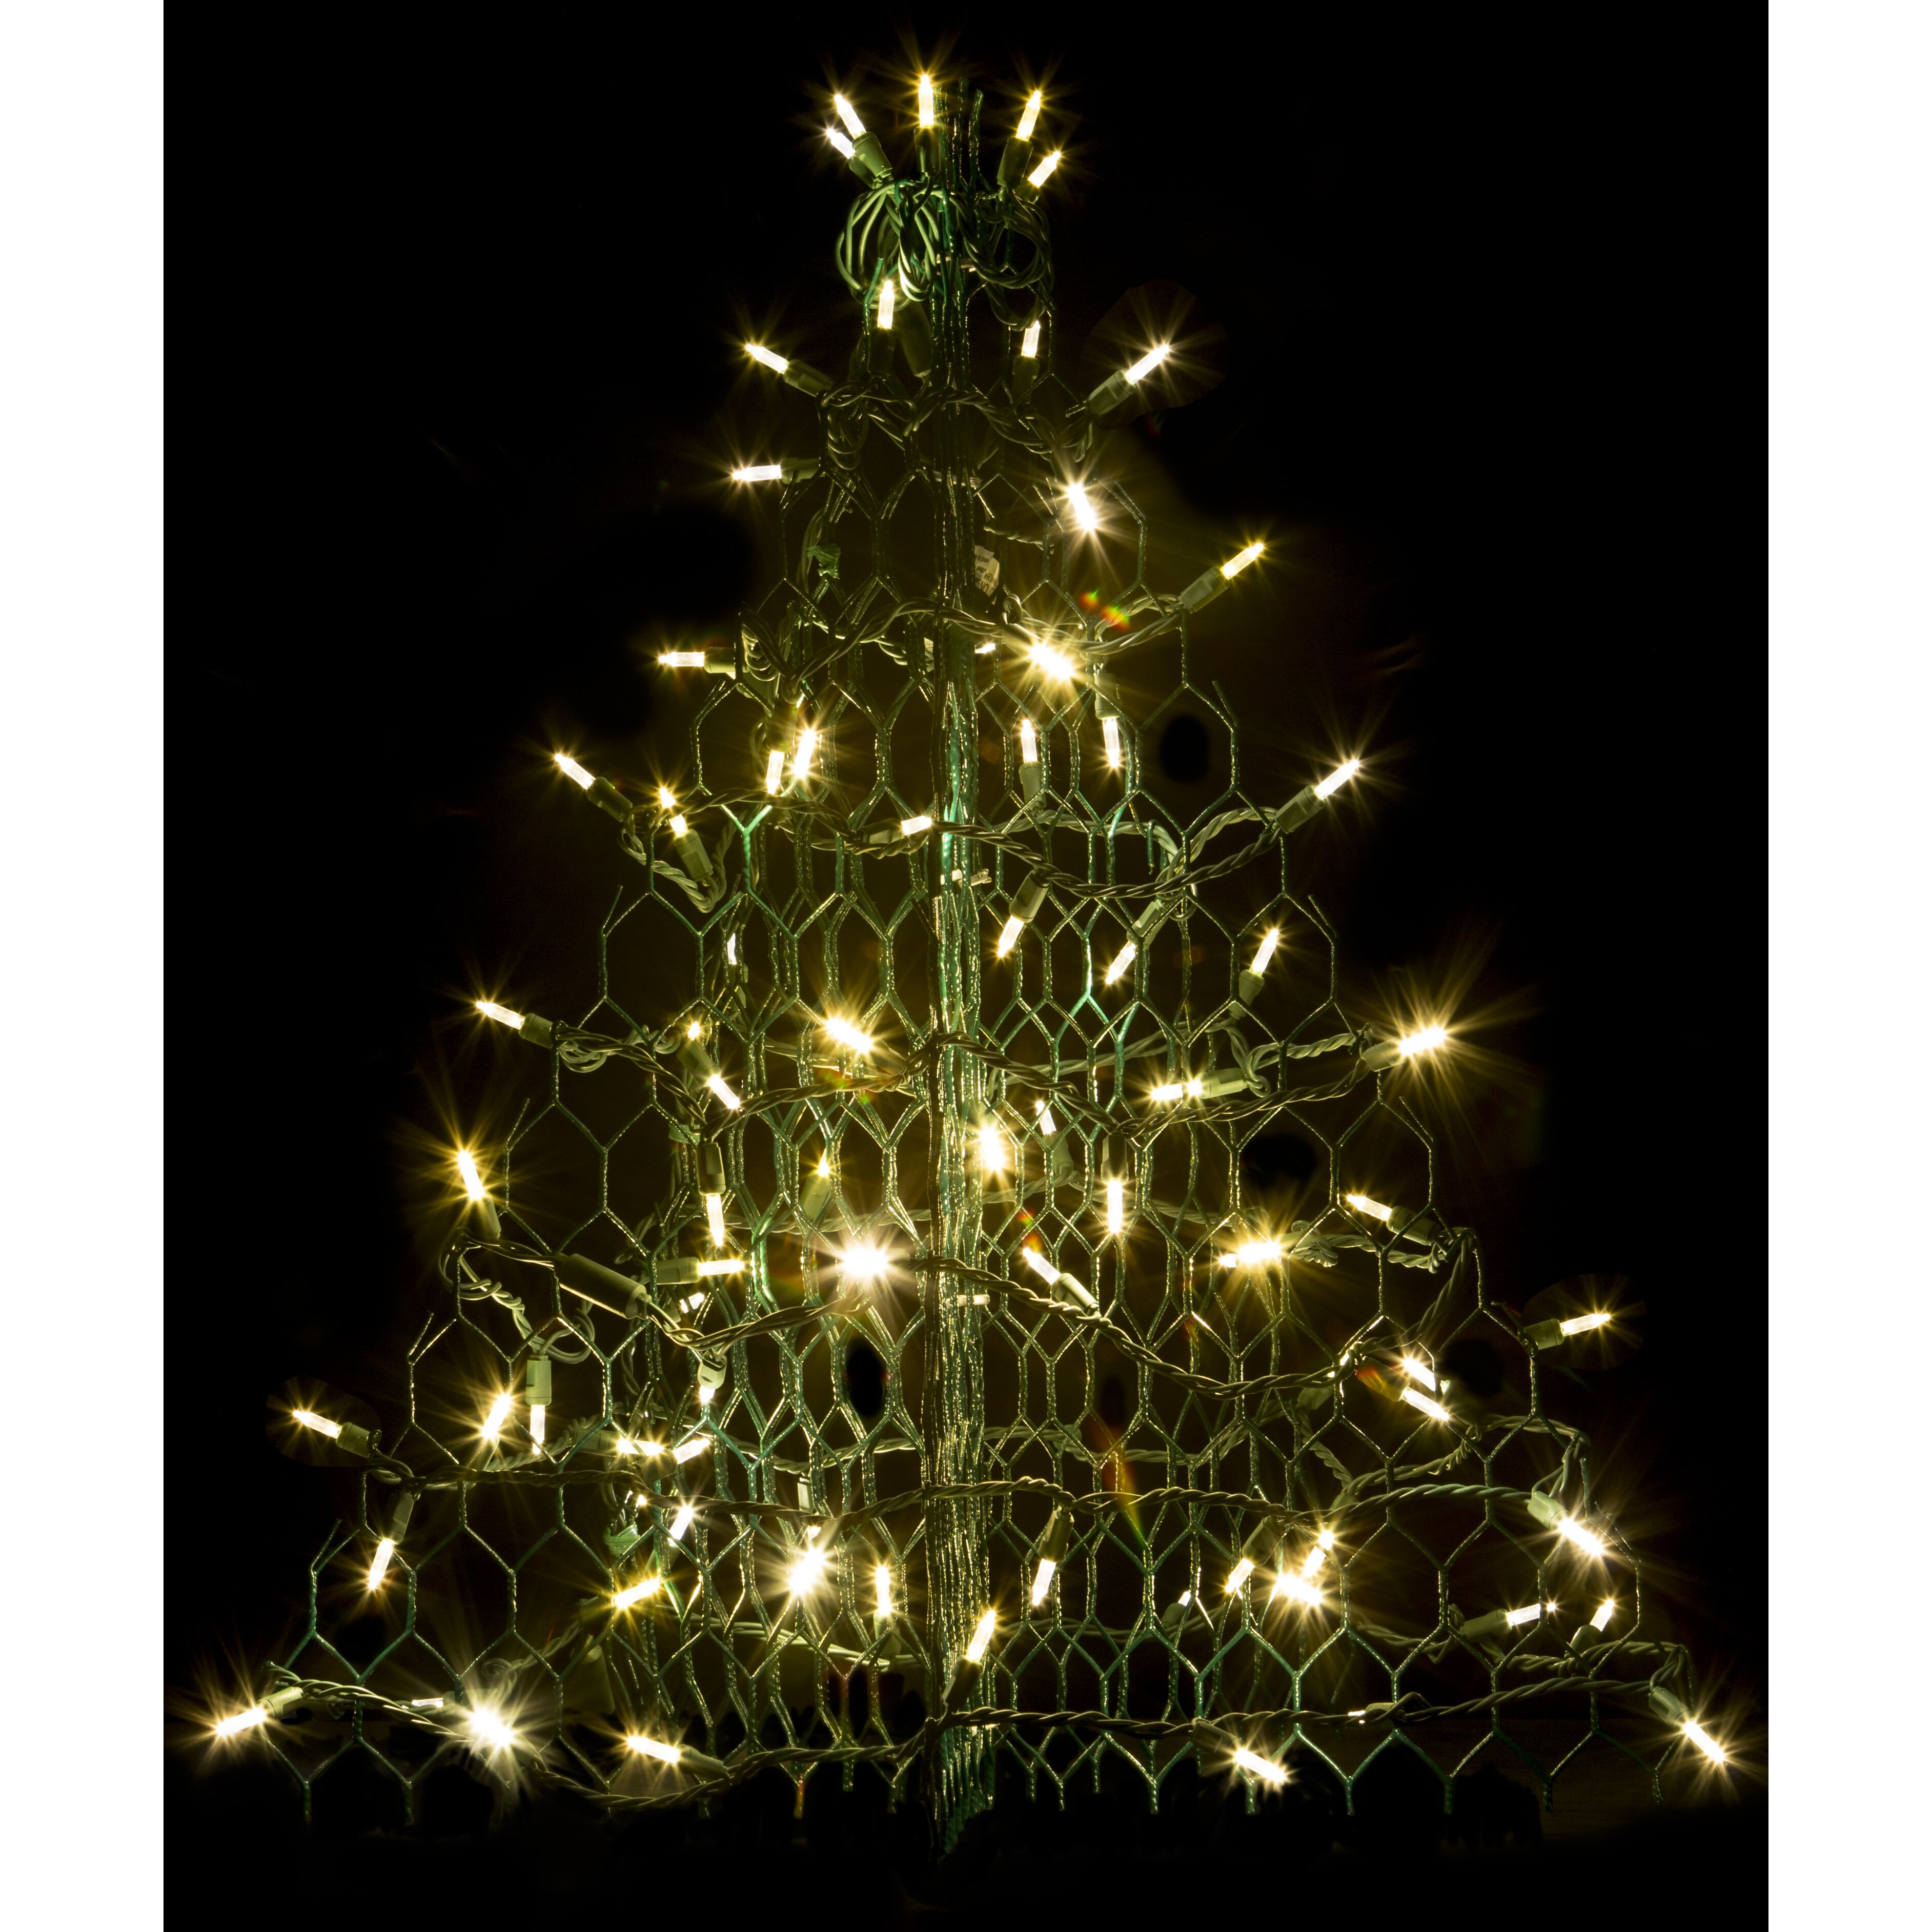 Crab Pot Christmas Trees Crab Pot Christmas Tree® with 80 ...